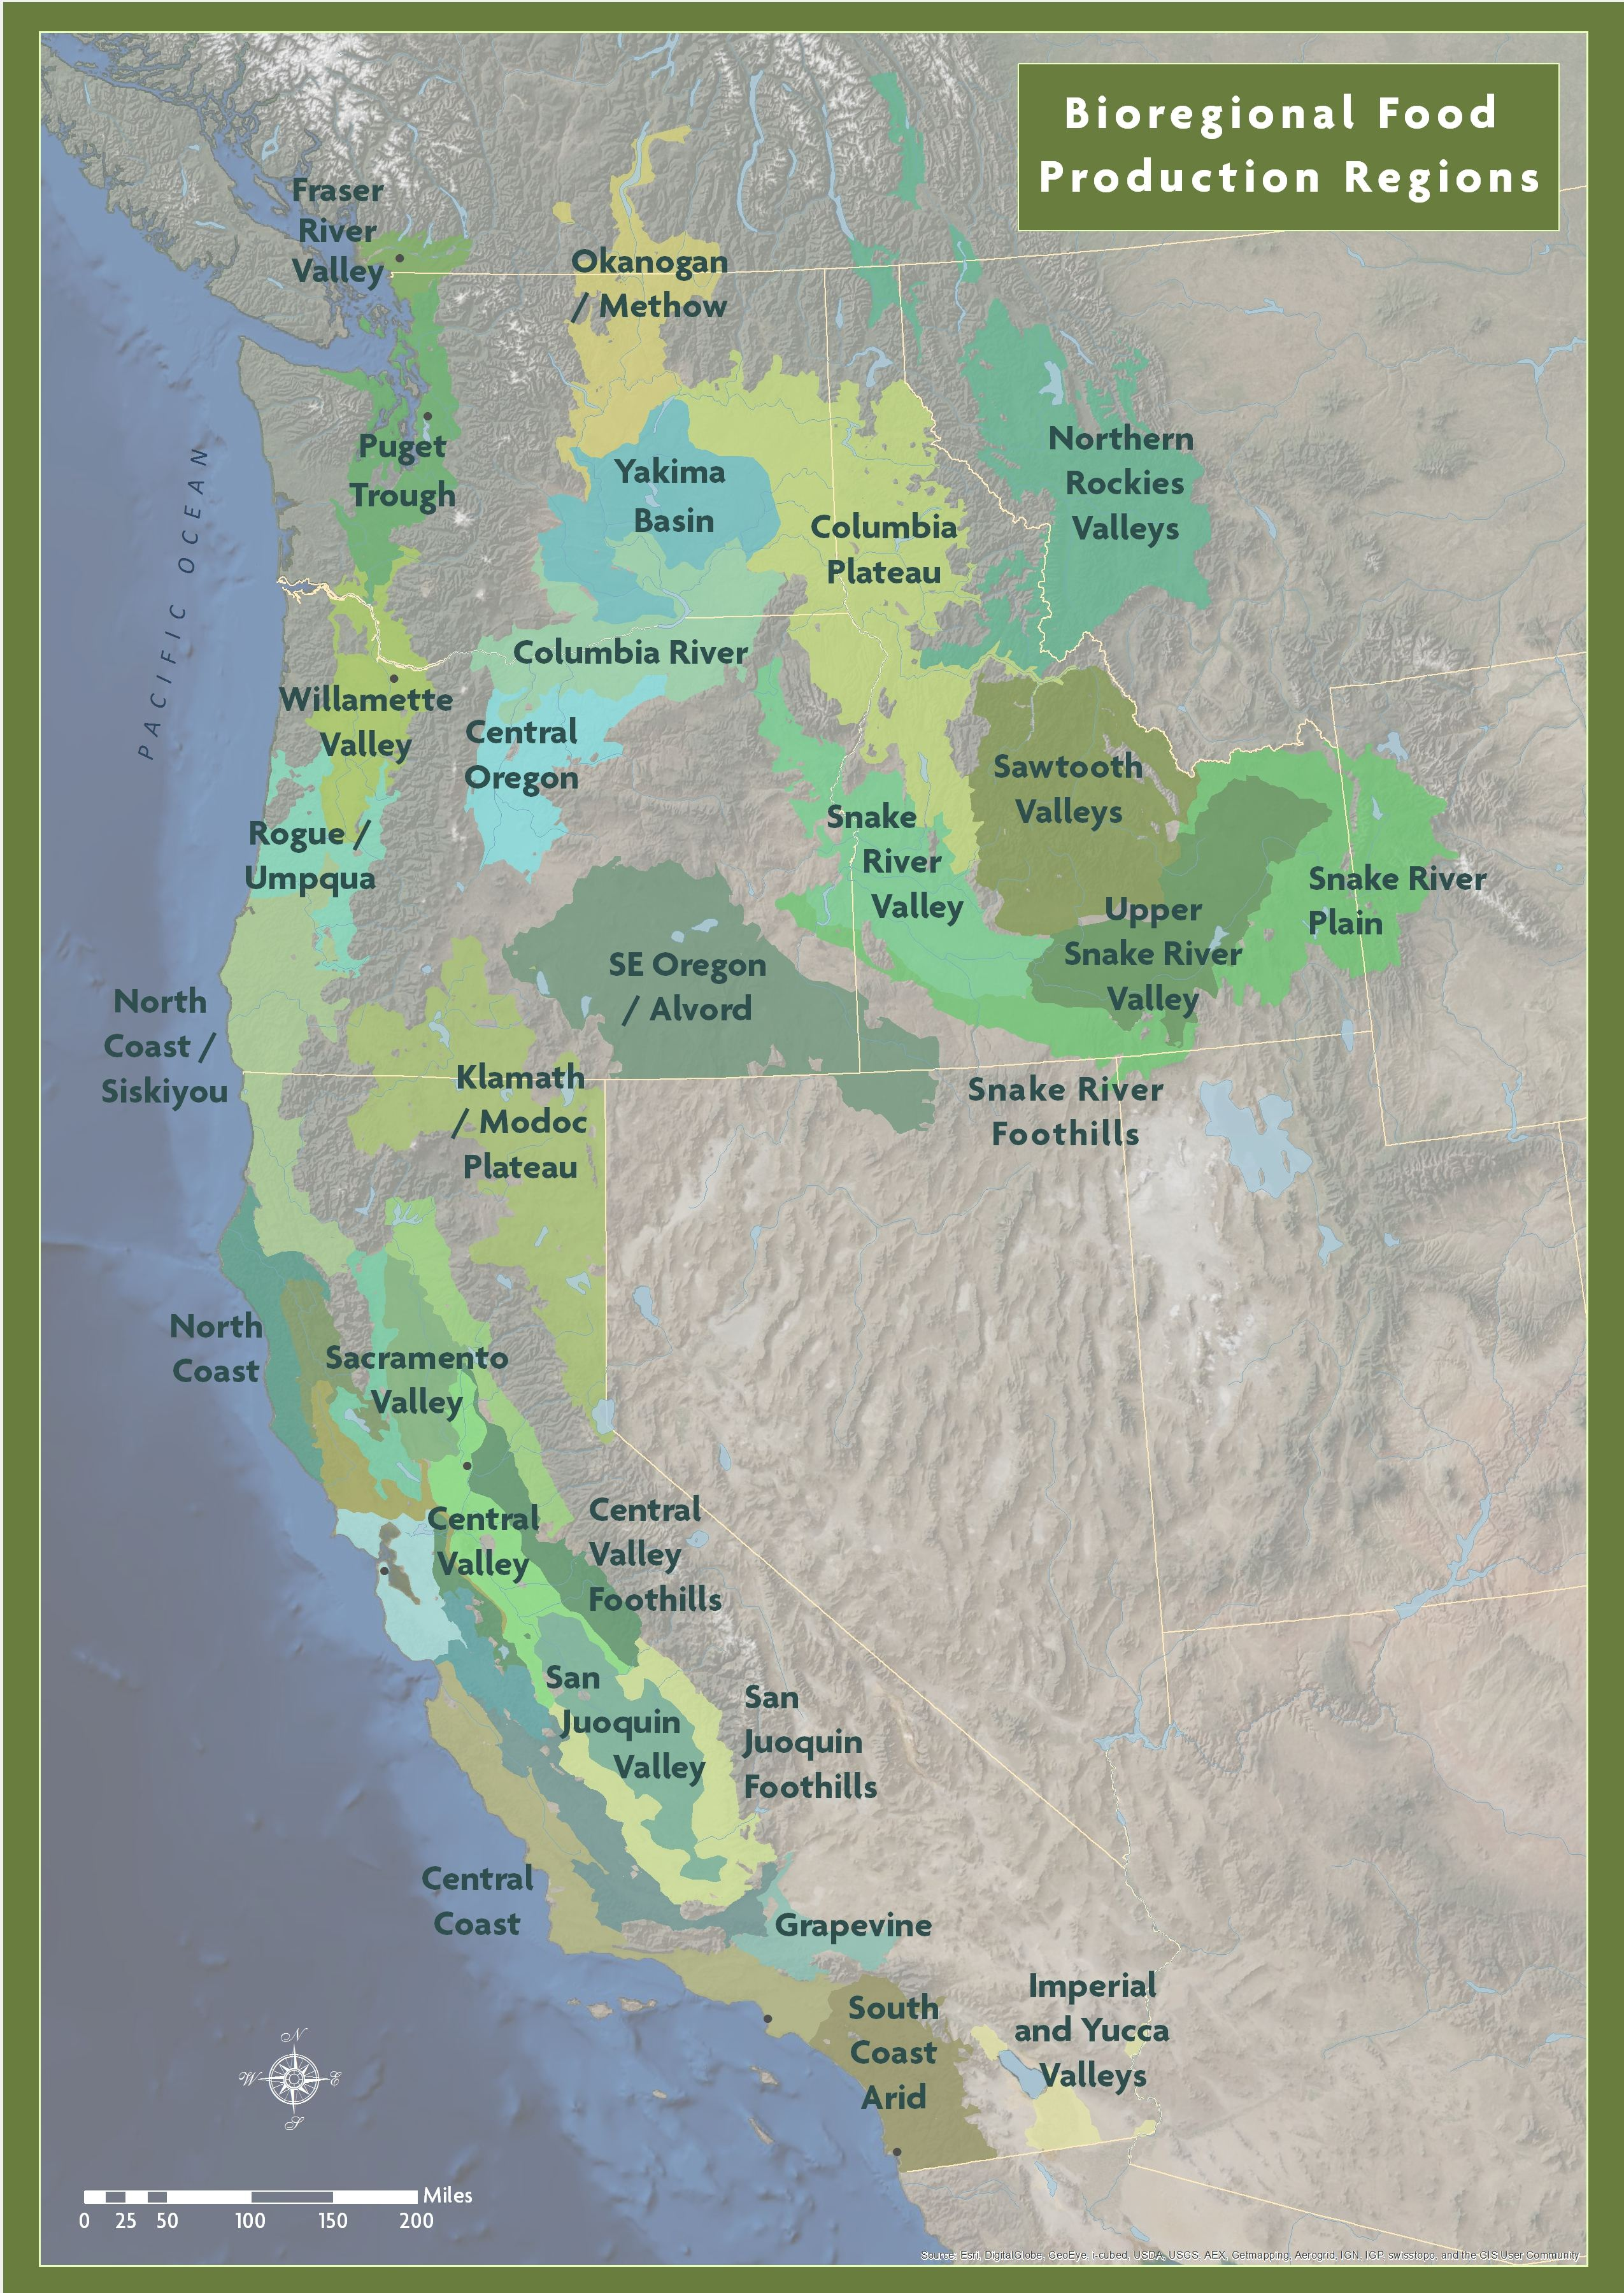 2014—Agro-Ecological Zones: We established new agricultural zones based on environmental and human factors. As we begin to model climate change across the region, this mapping system will help us understand how factors like temperature or water will be affected in each of our zones.